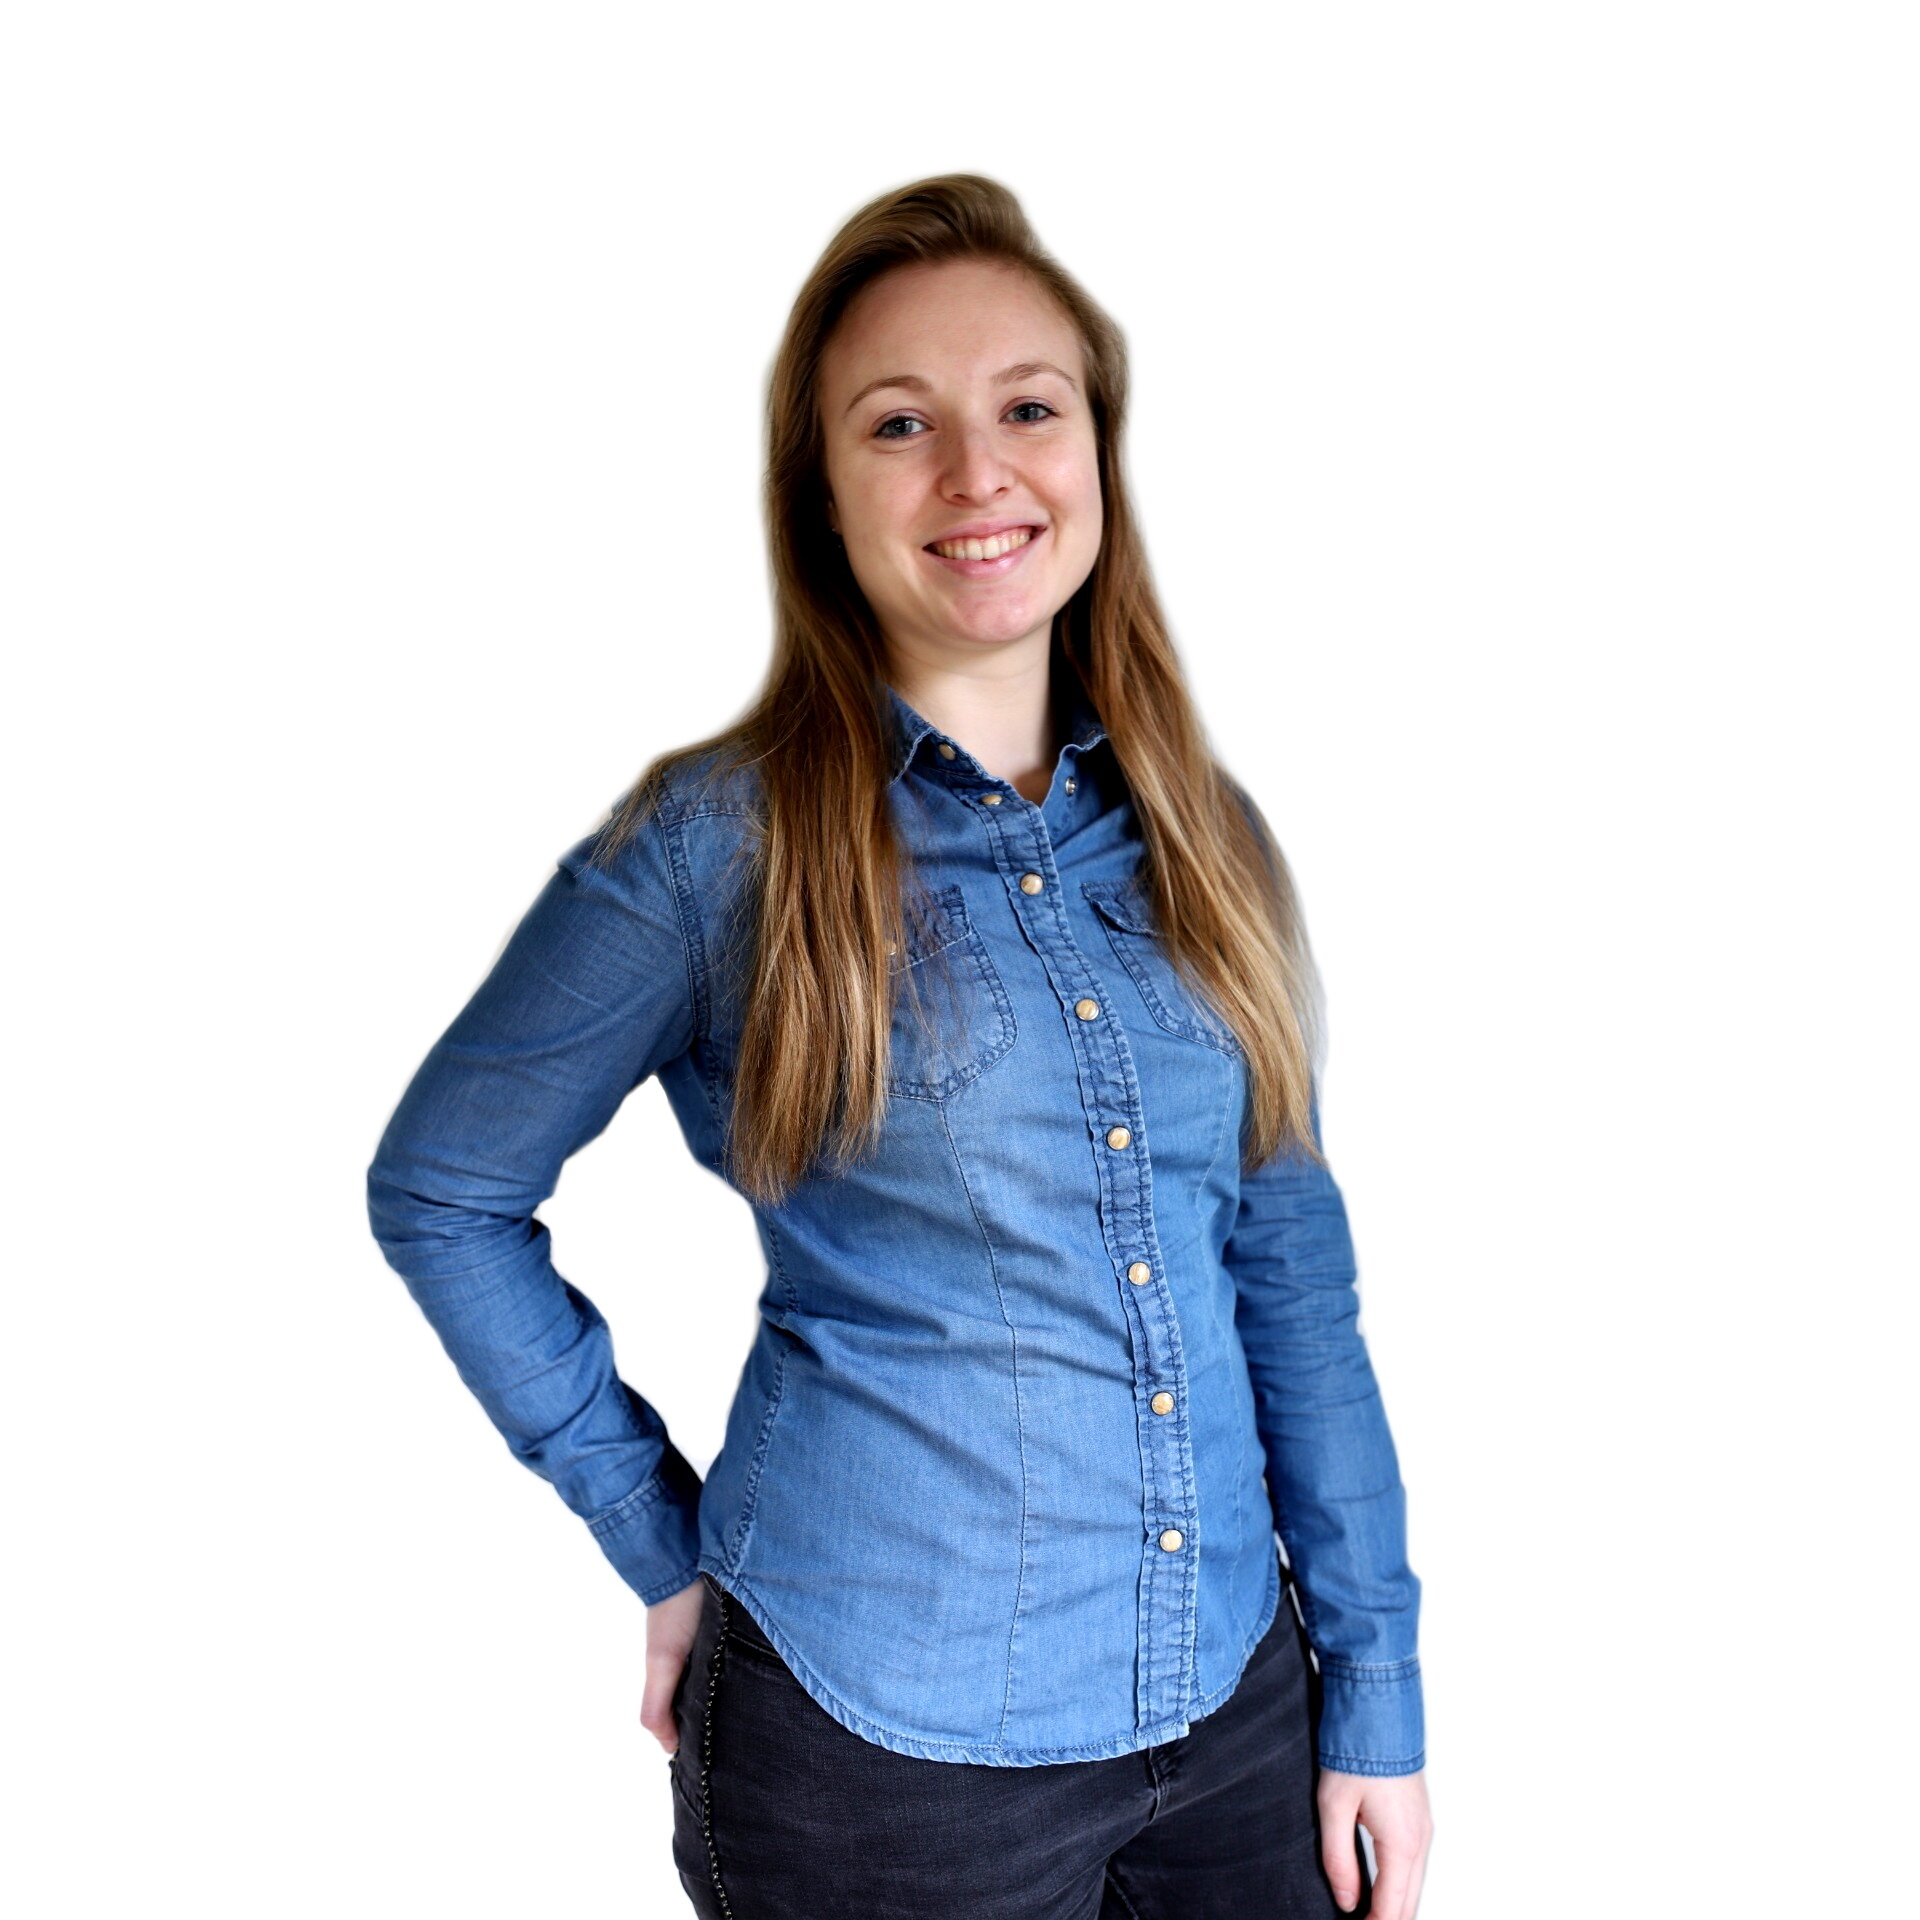 Junior manager Laura Verboven